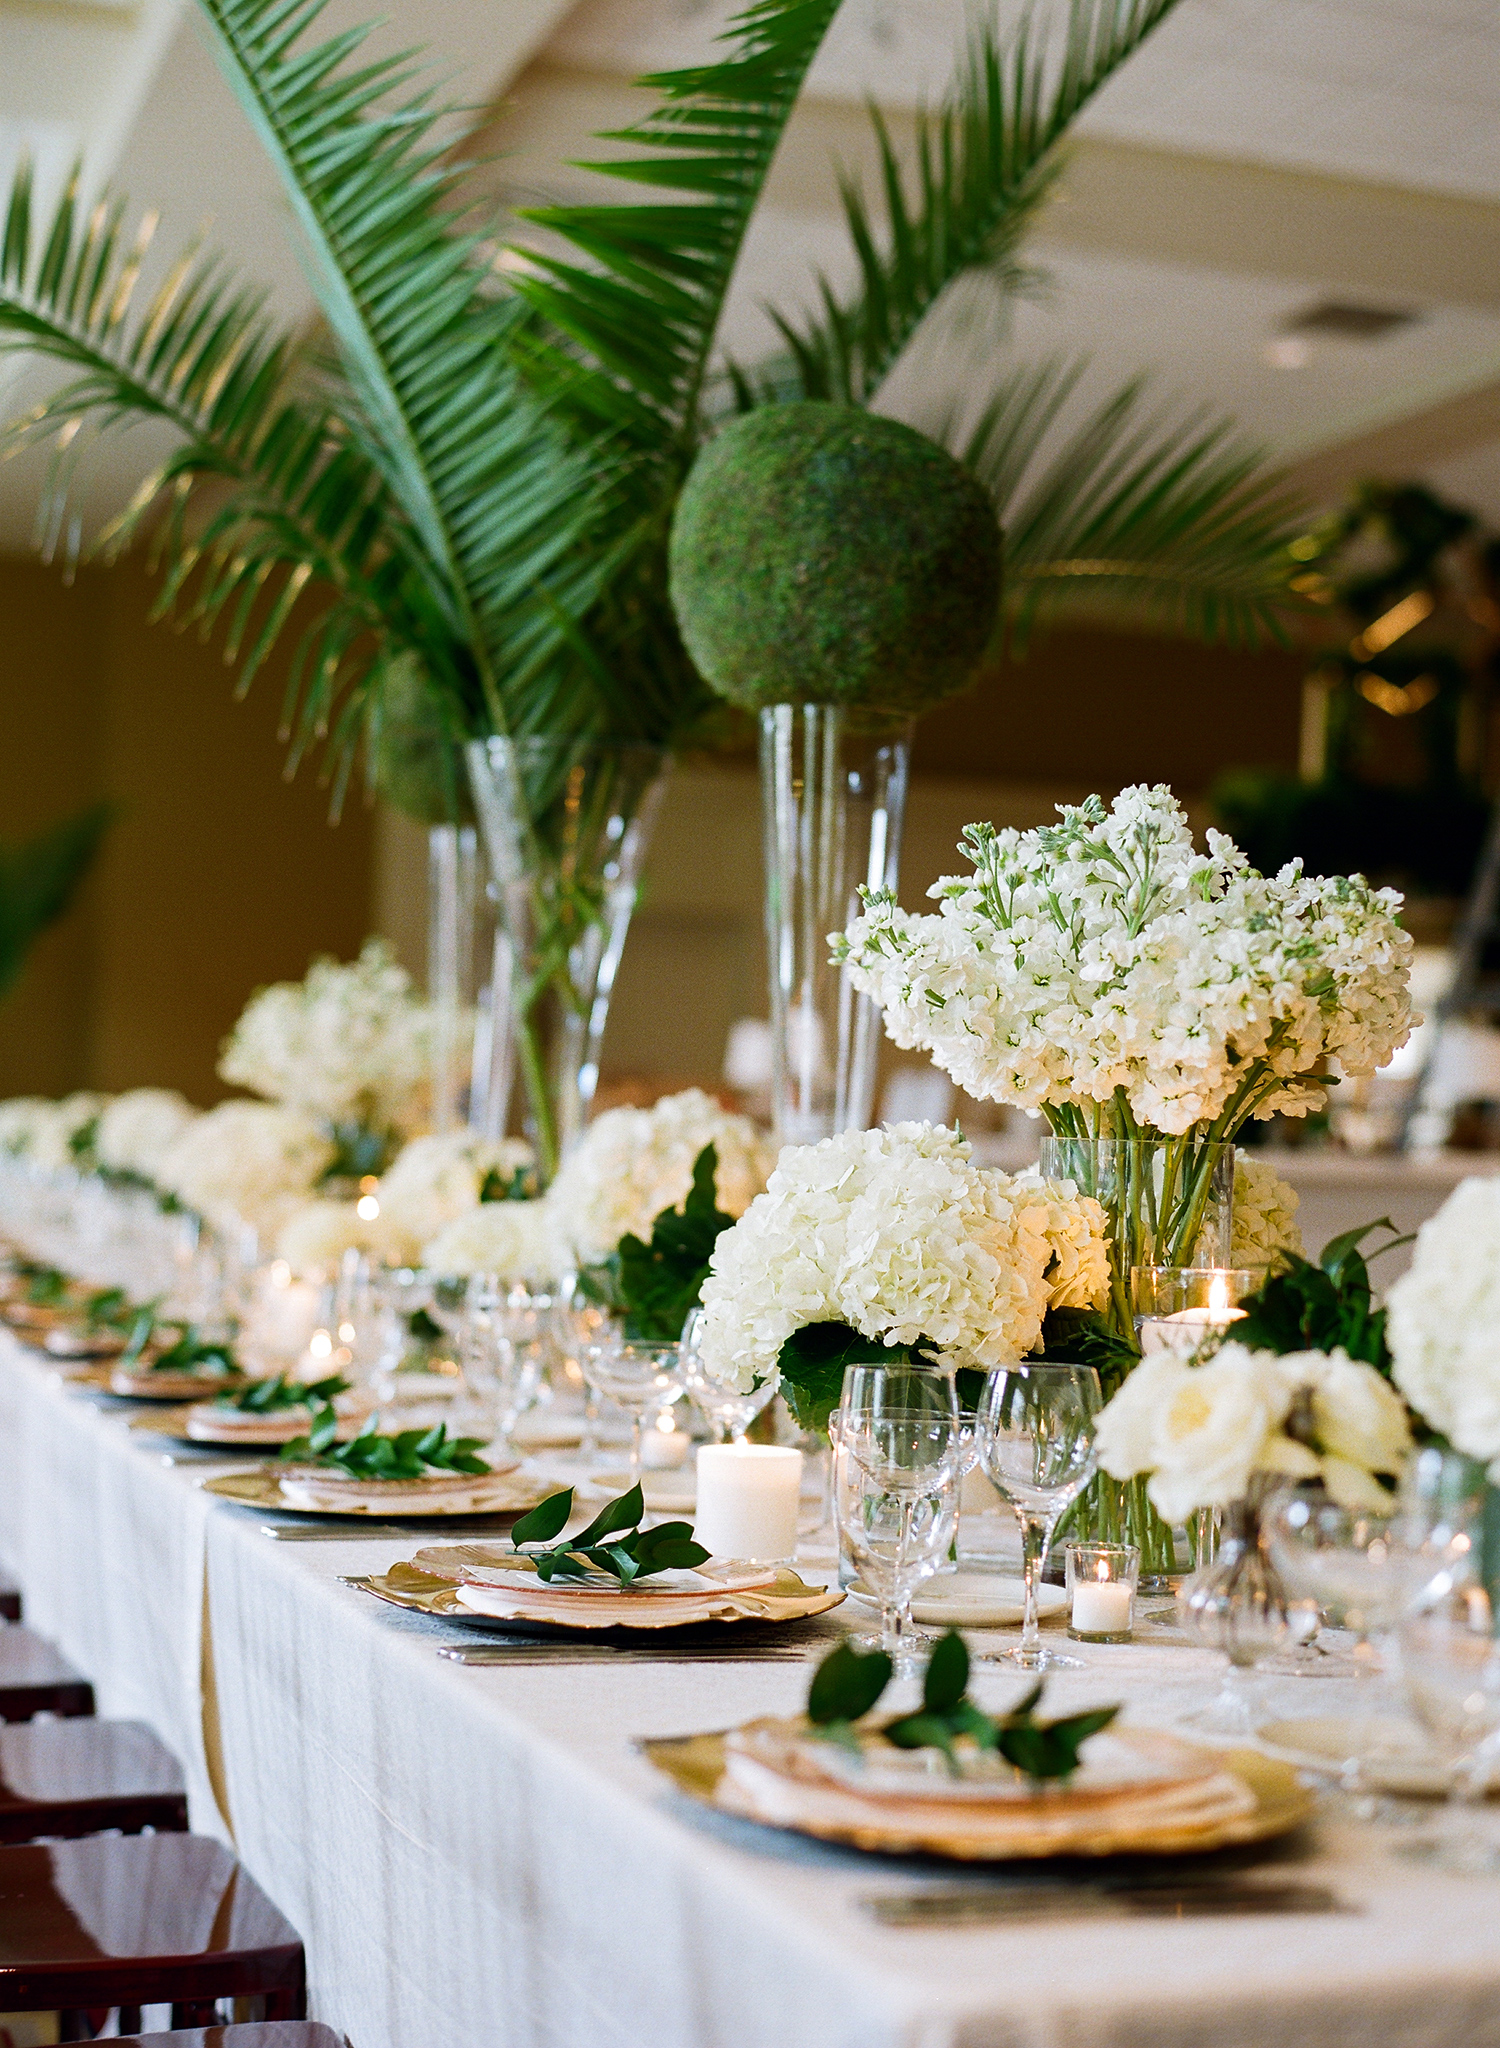 Sensational Centerpieces